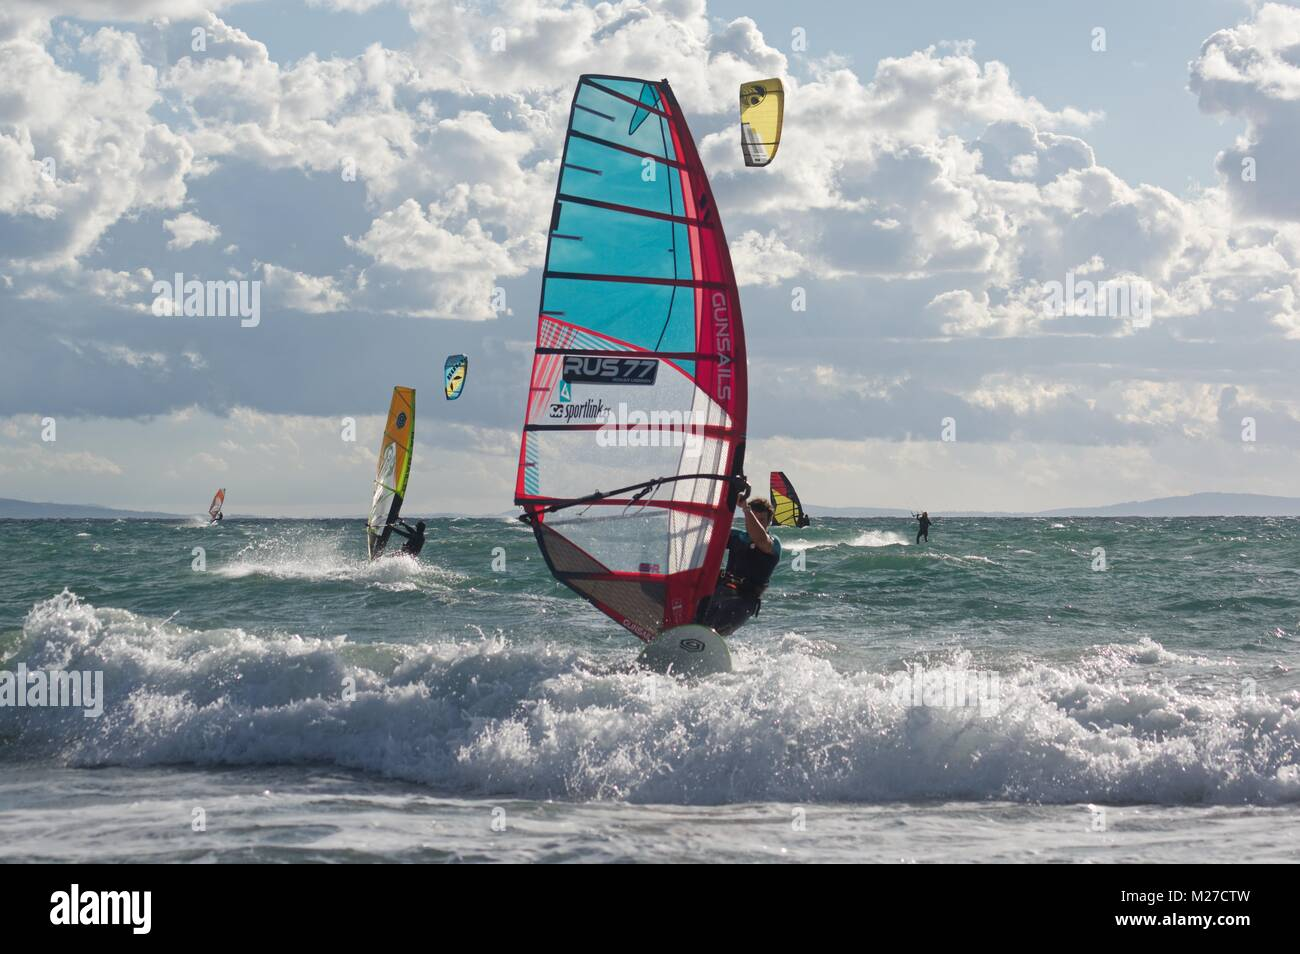 Watersports at Los Lances beach, Tarifa, Spain - Stock Image